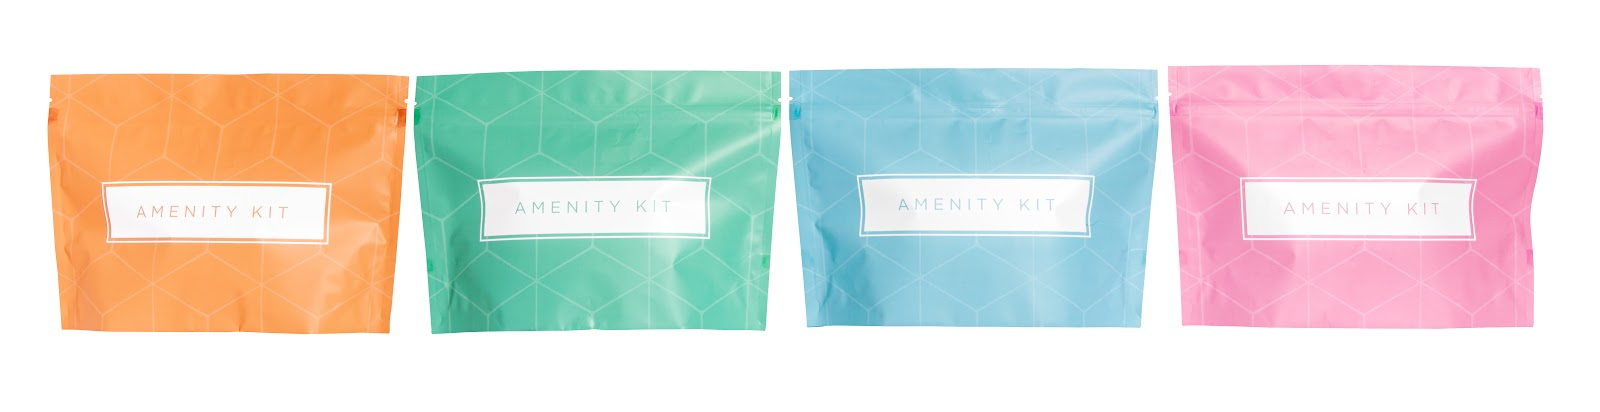 on-acquiring-and-growing-a-vacation-rental-amenity-kits-business